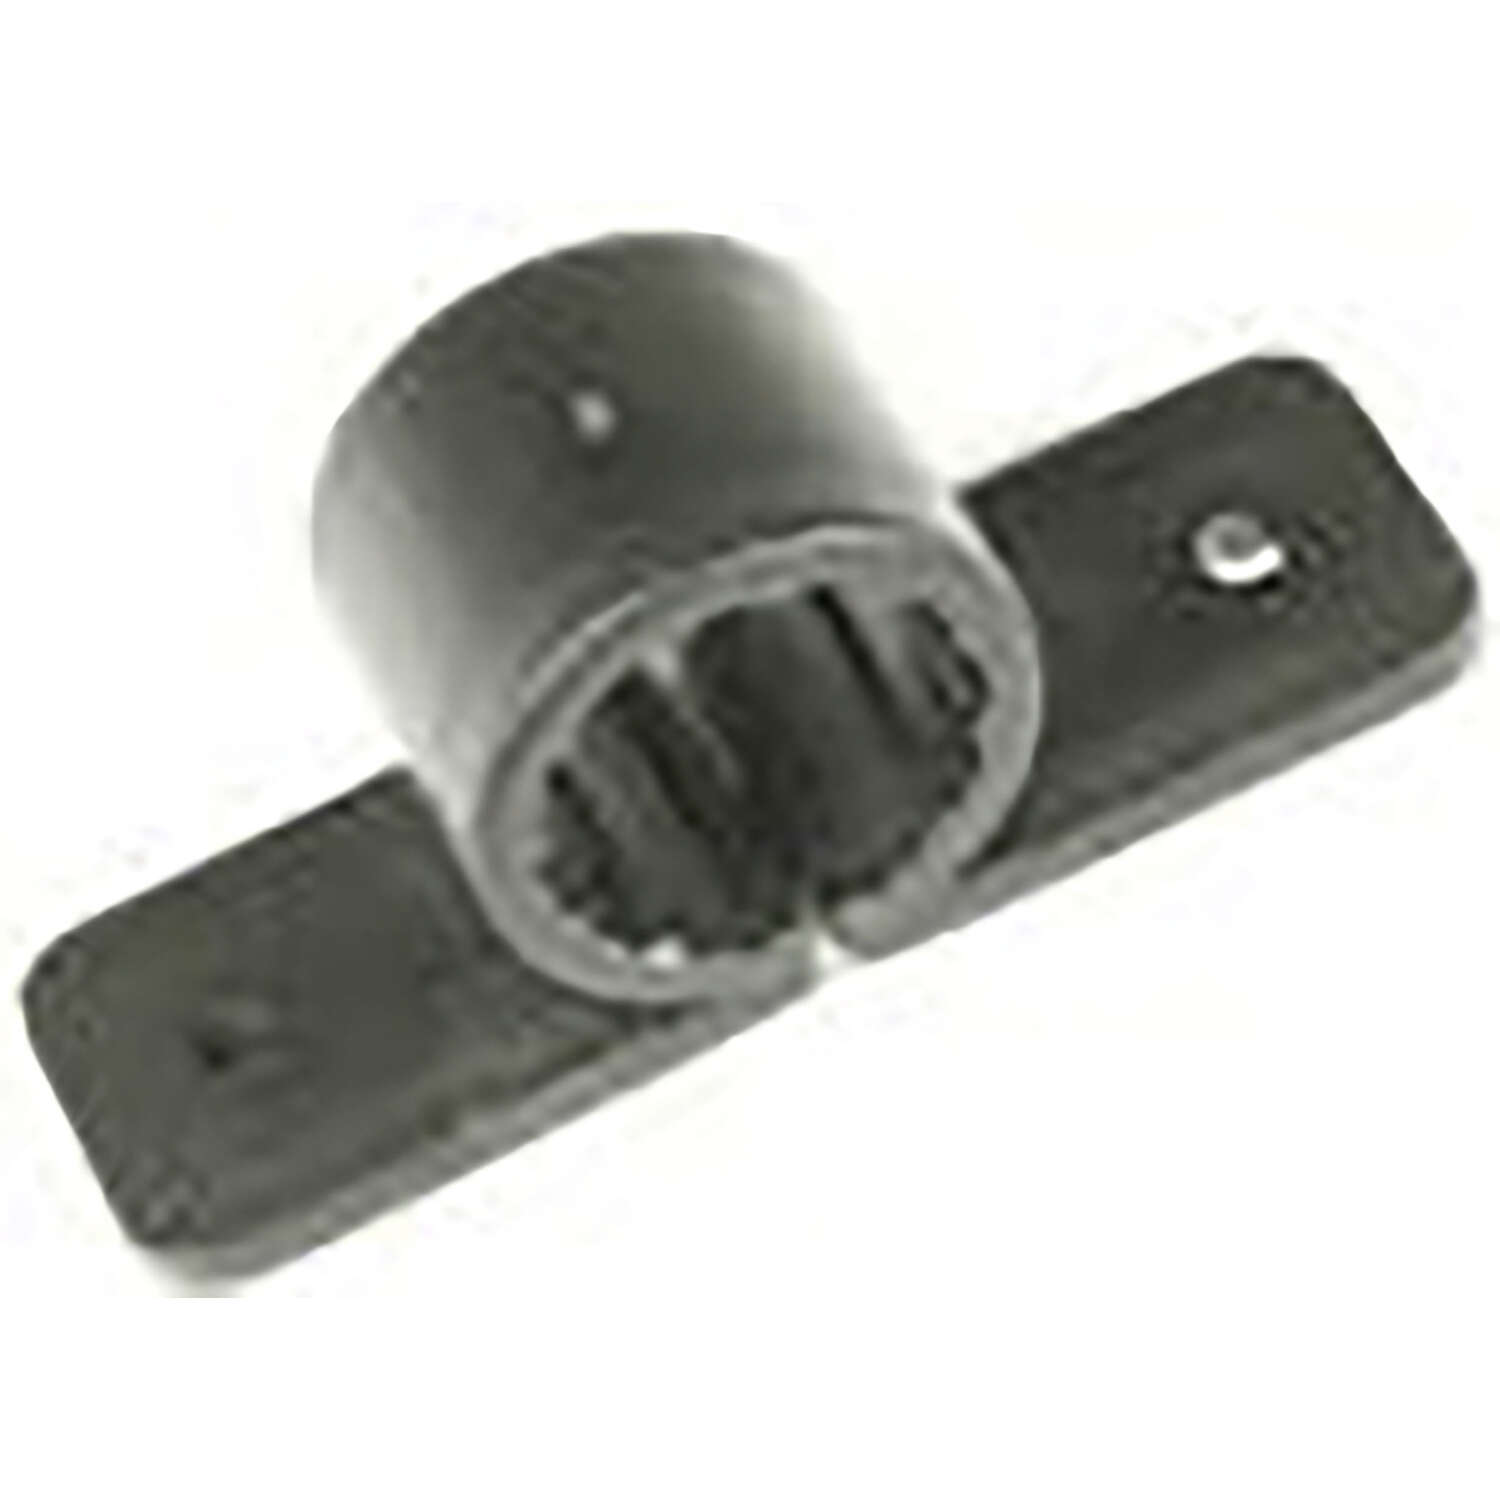 Warwick Hanger  1 in. Black  Polypropylene  Pipe Clamps